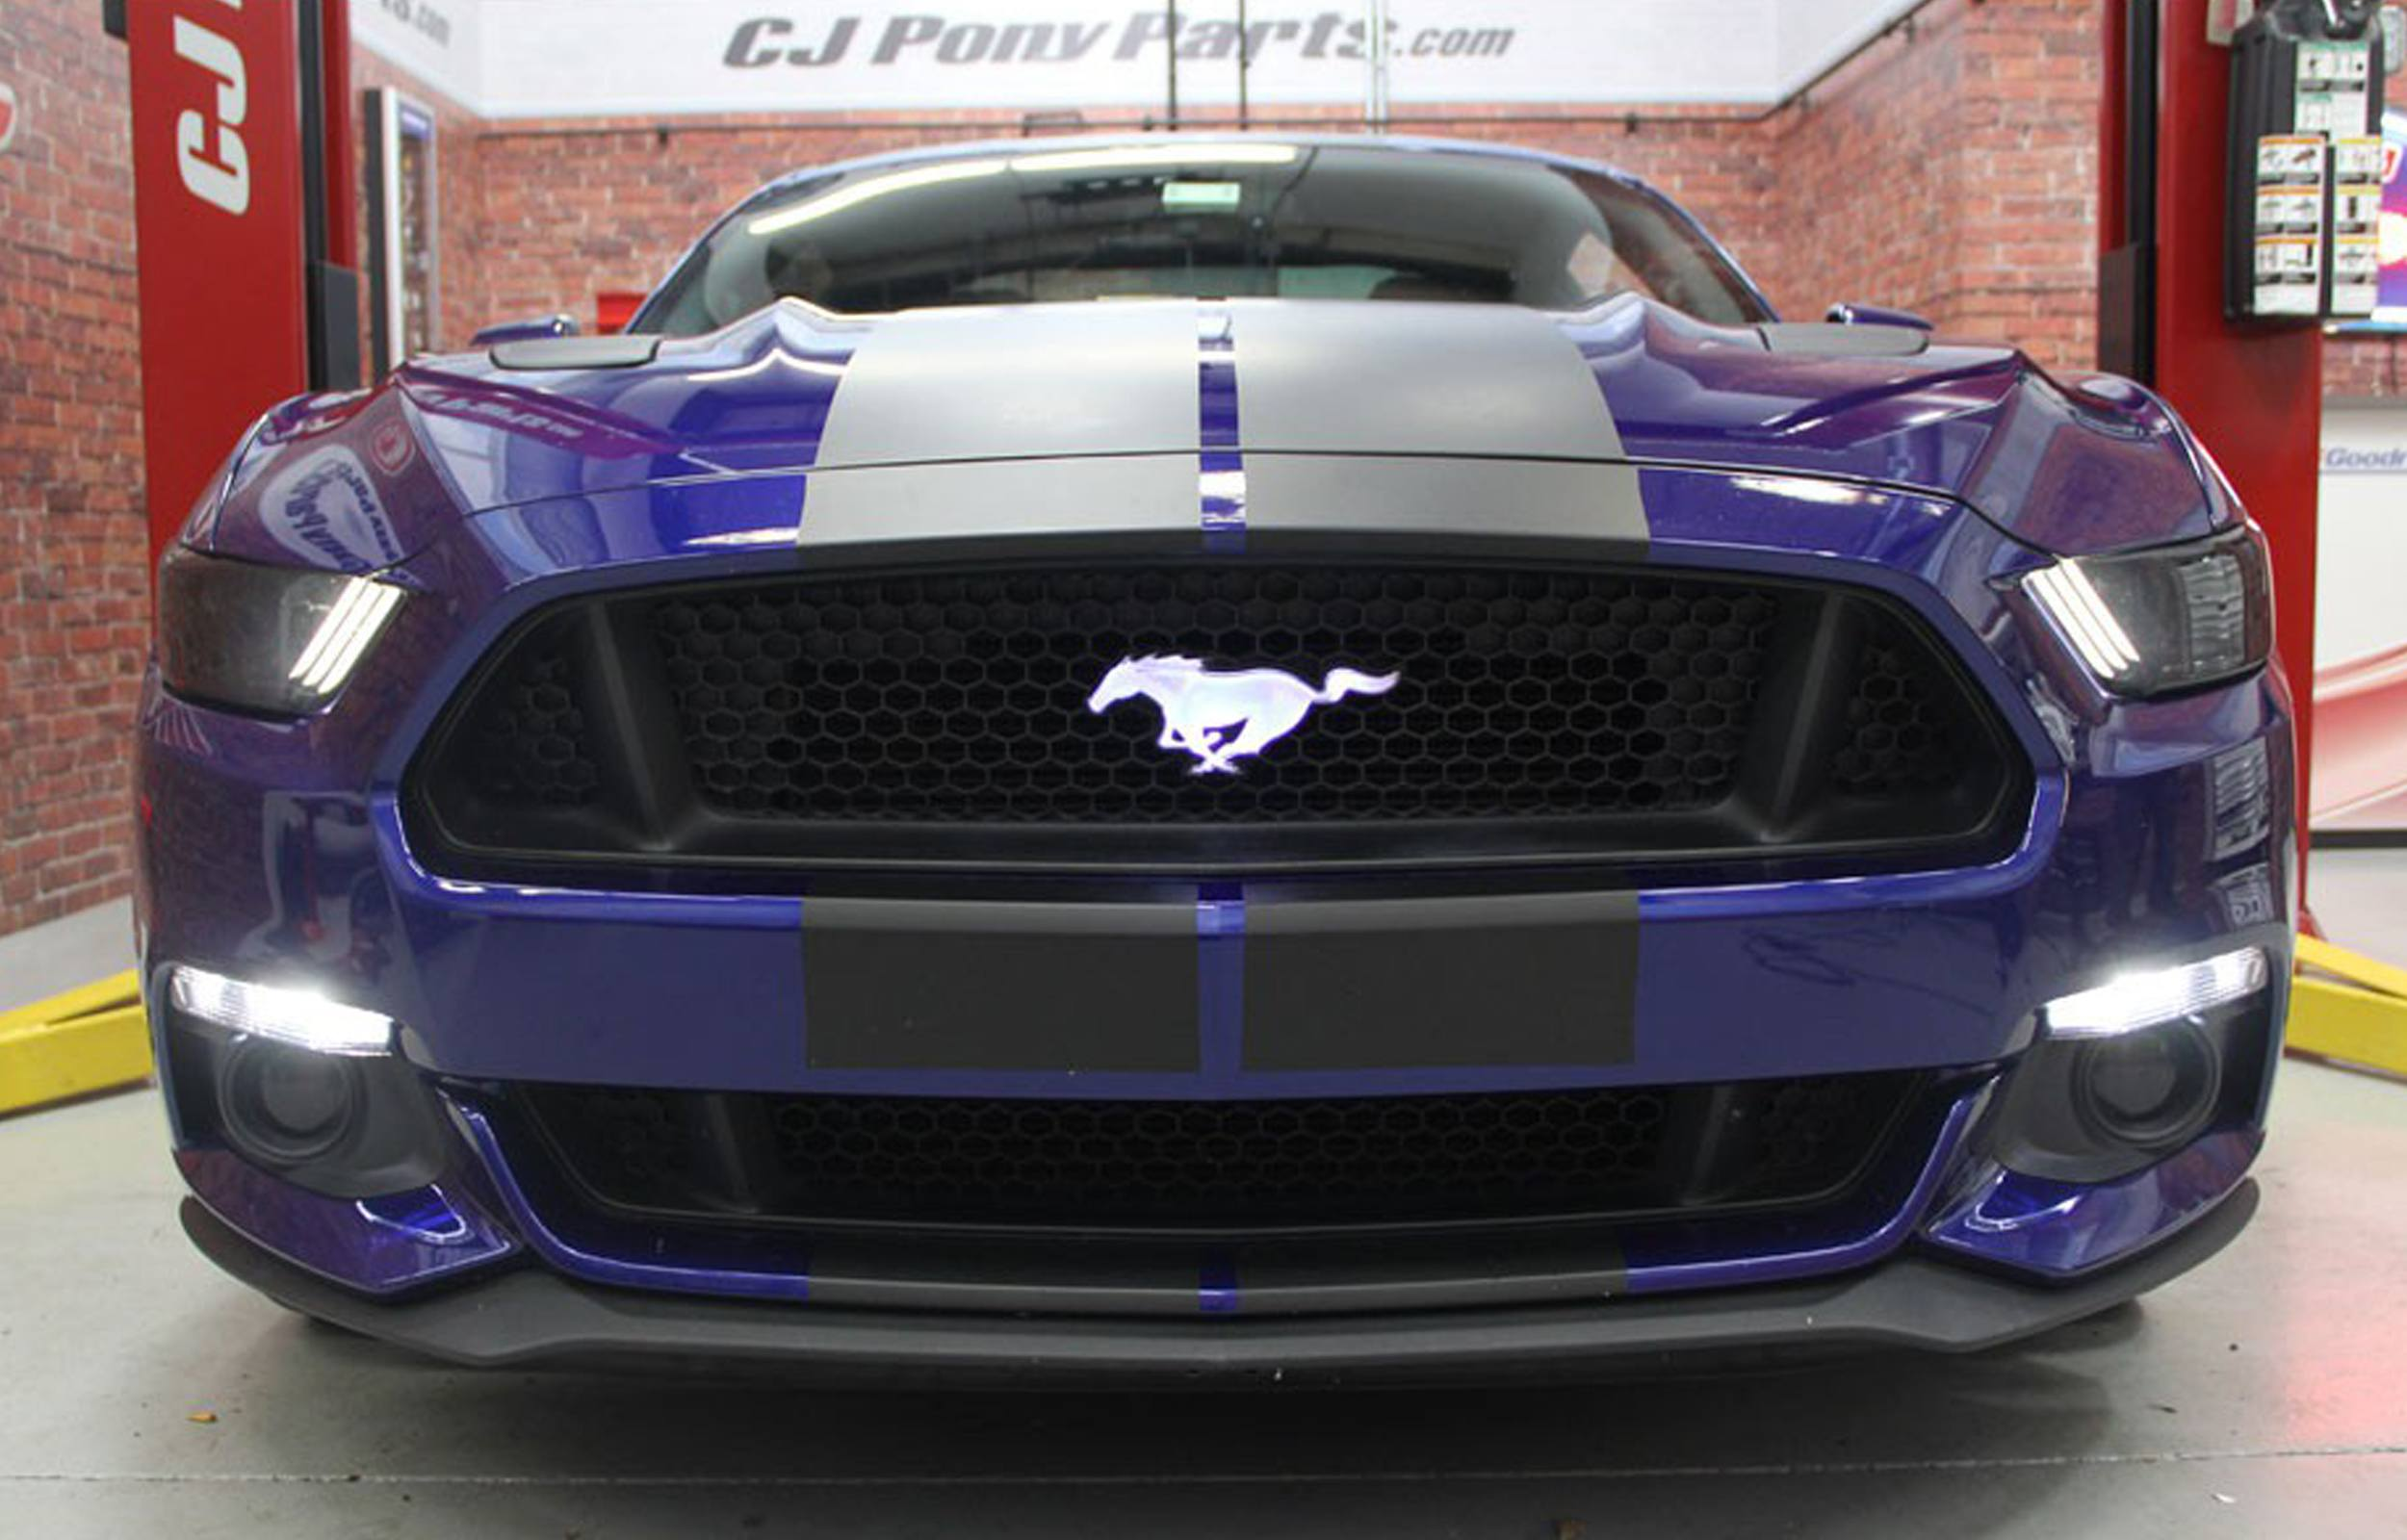 Illuminated Mustang Pony Badge The Hid Factory